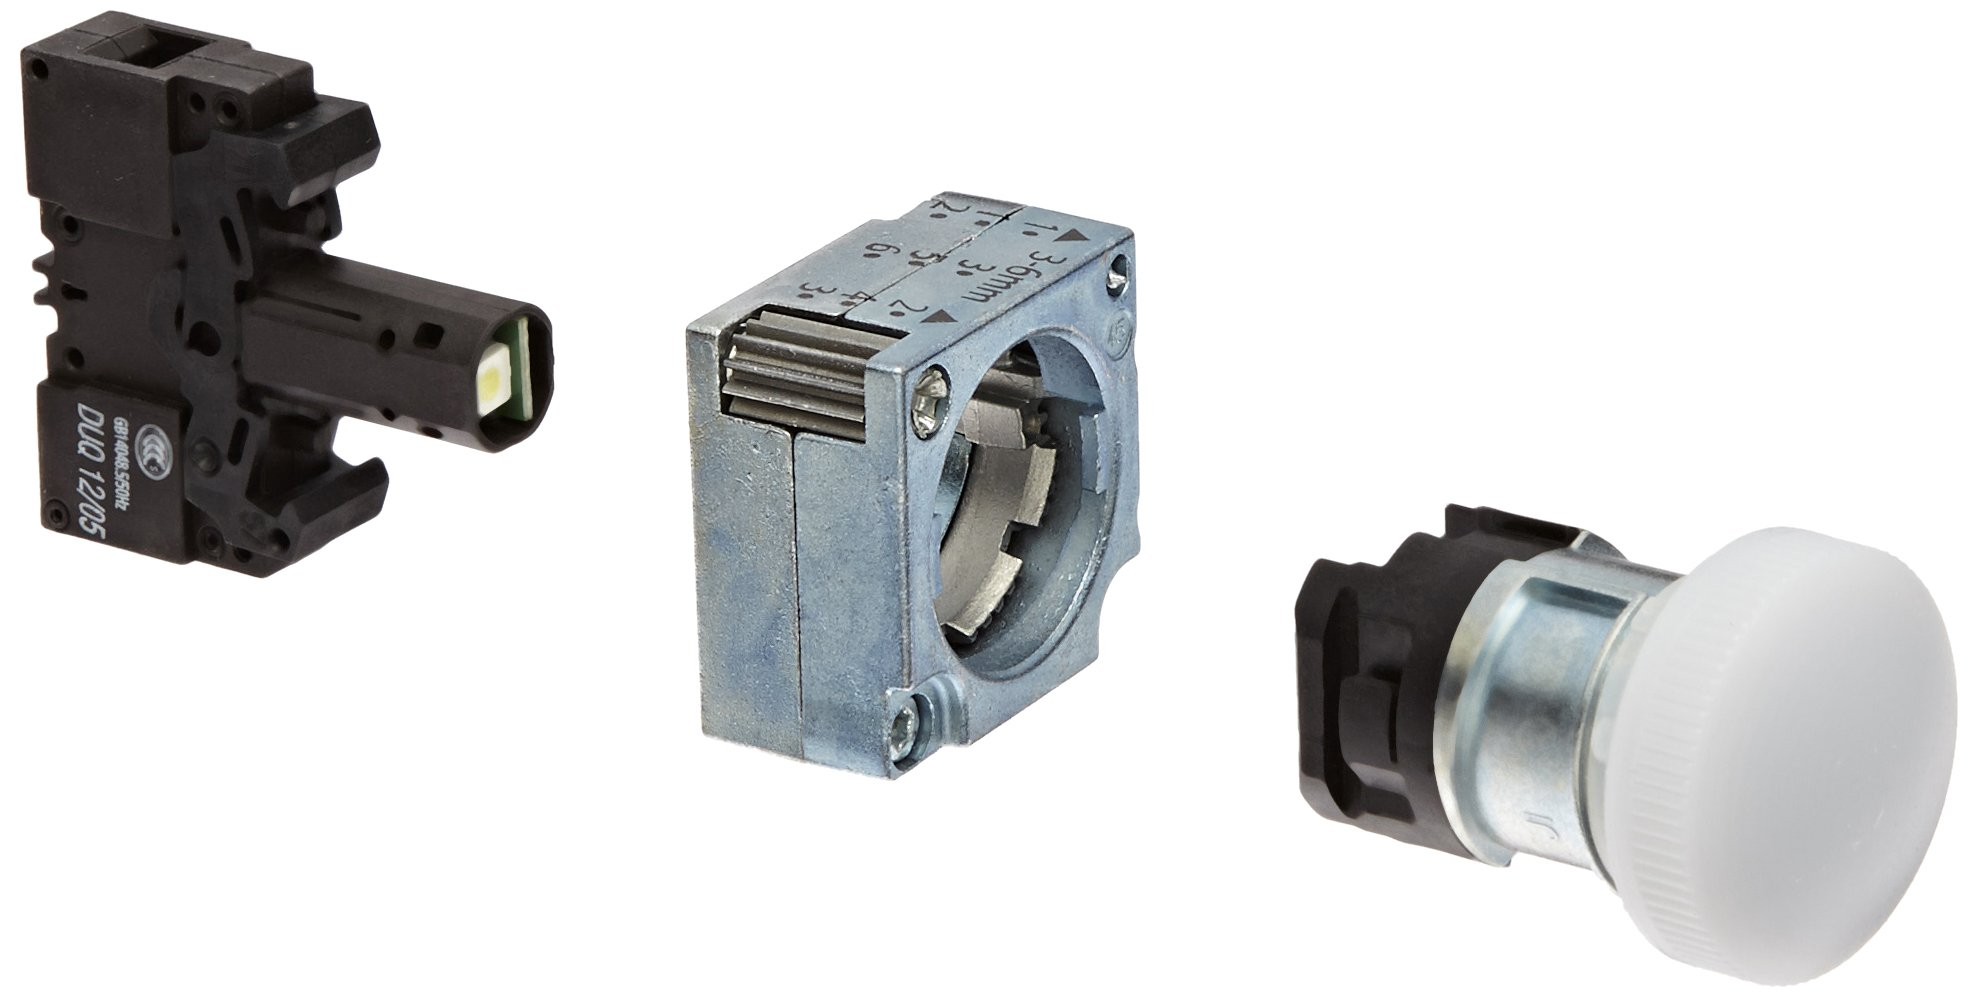 Siemens 3SB36 44-6BA60 Indicator Light, Integrated LED, Concentric Rings, White, 24VAC/VDC Lamp Voltage